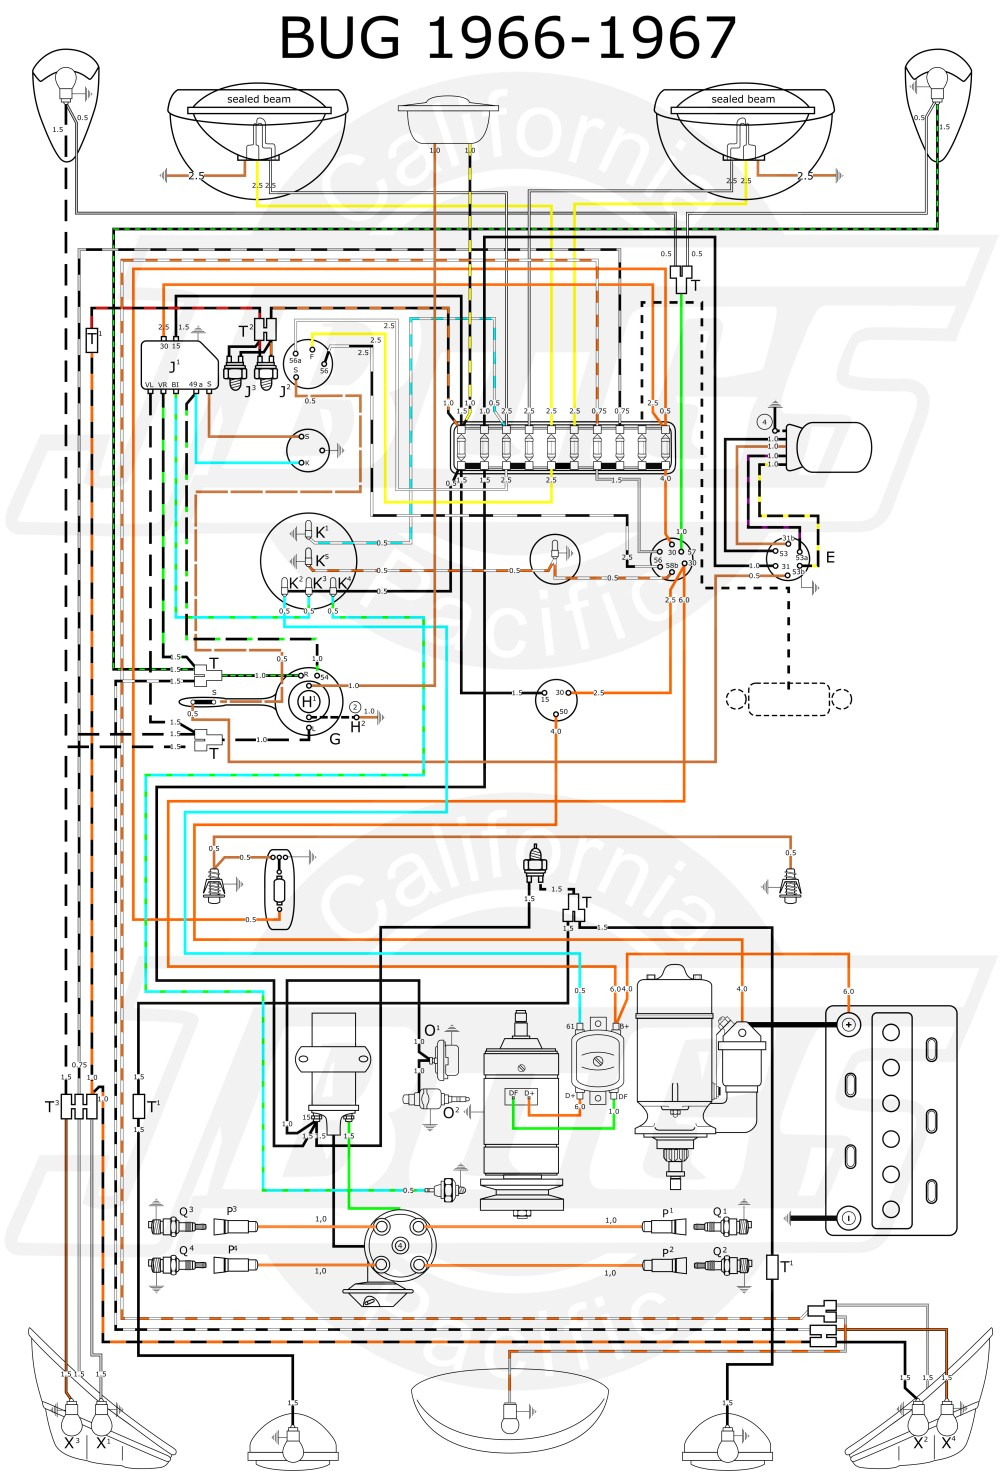 medium resolution of vw tech article 1966 67 wiring diagram 67 vw bug wiring diagram 67 vw wiring diagram